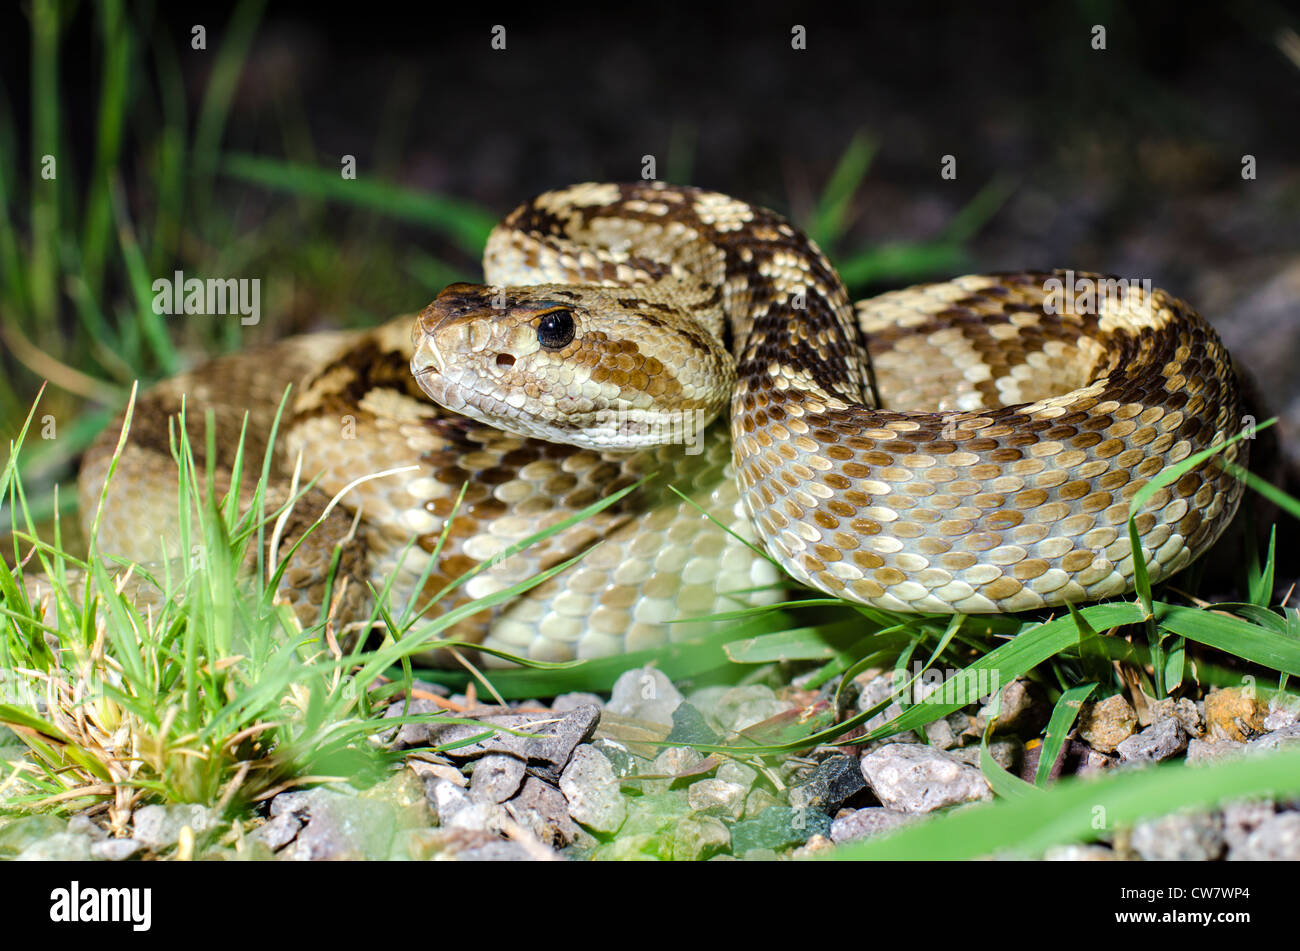 Northern Black-tailed Rattlesnake, (Crotalus molossus molossus), Black Range, Sierra county, New Mexico, USA. Stock Photo